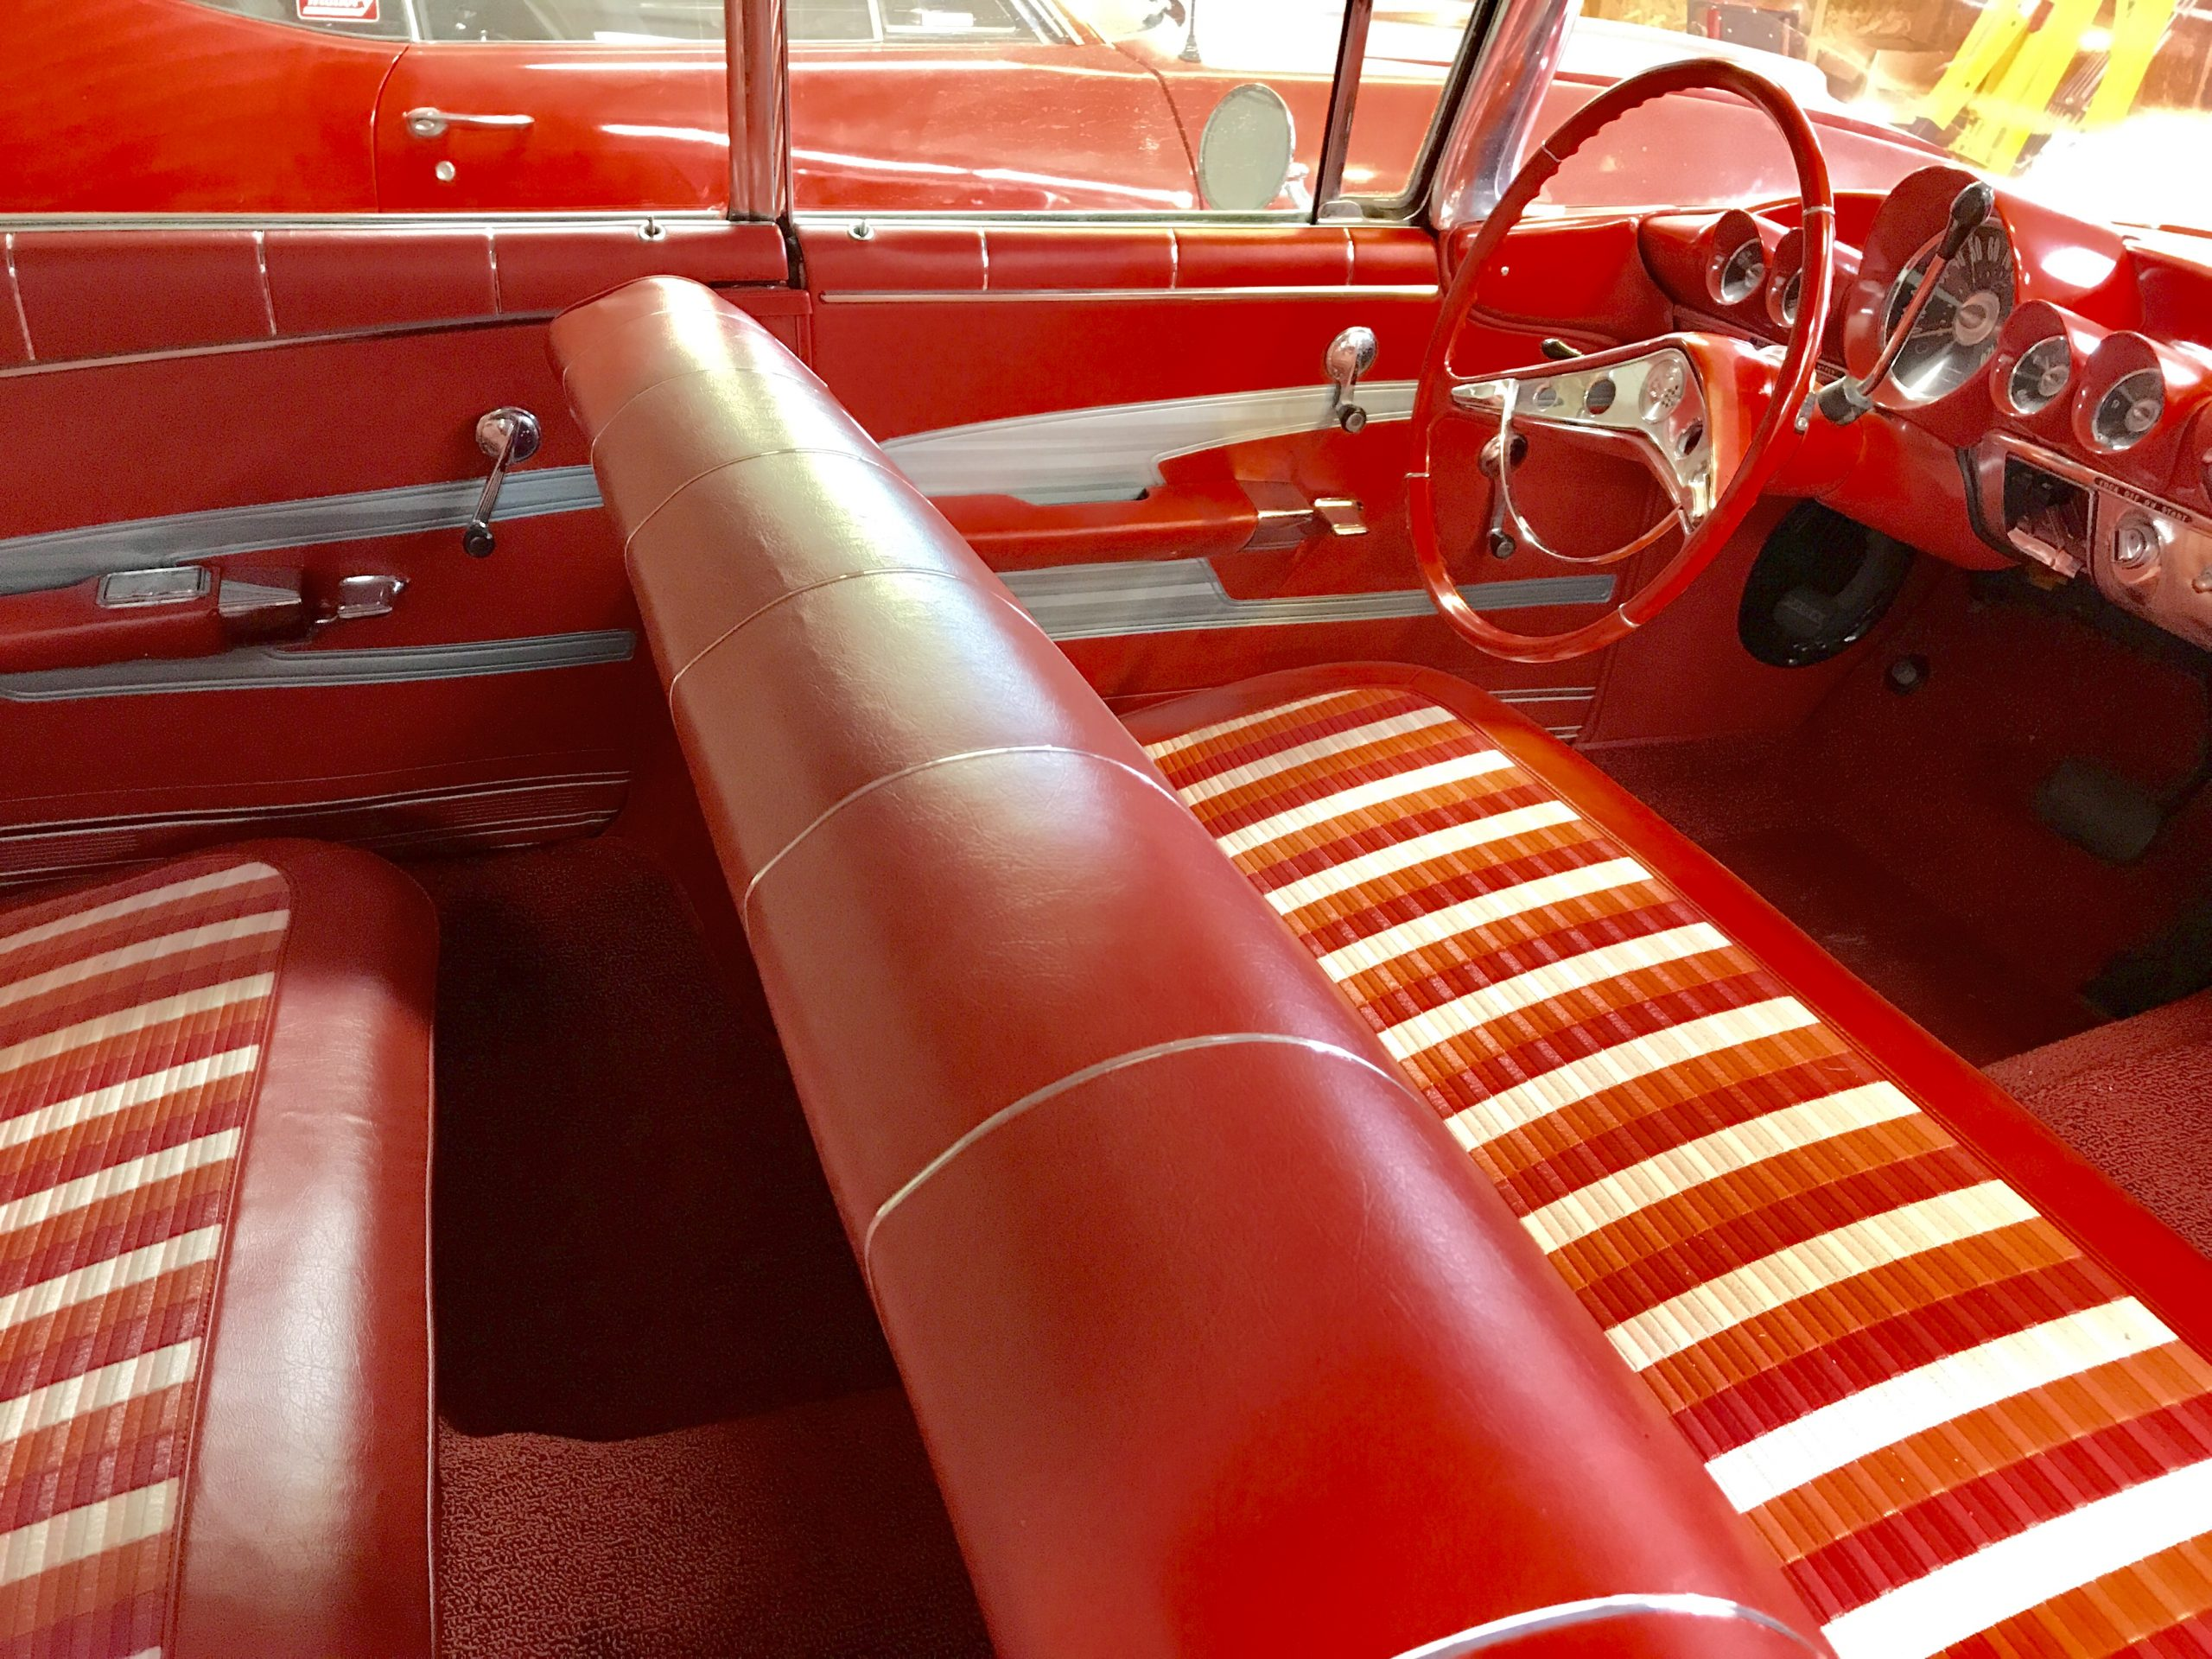 1959 Chevrolet Impala interior restored